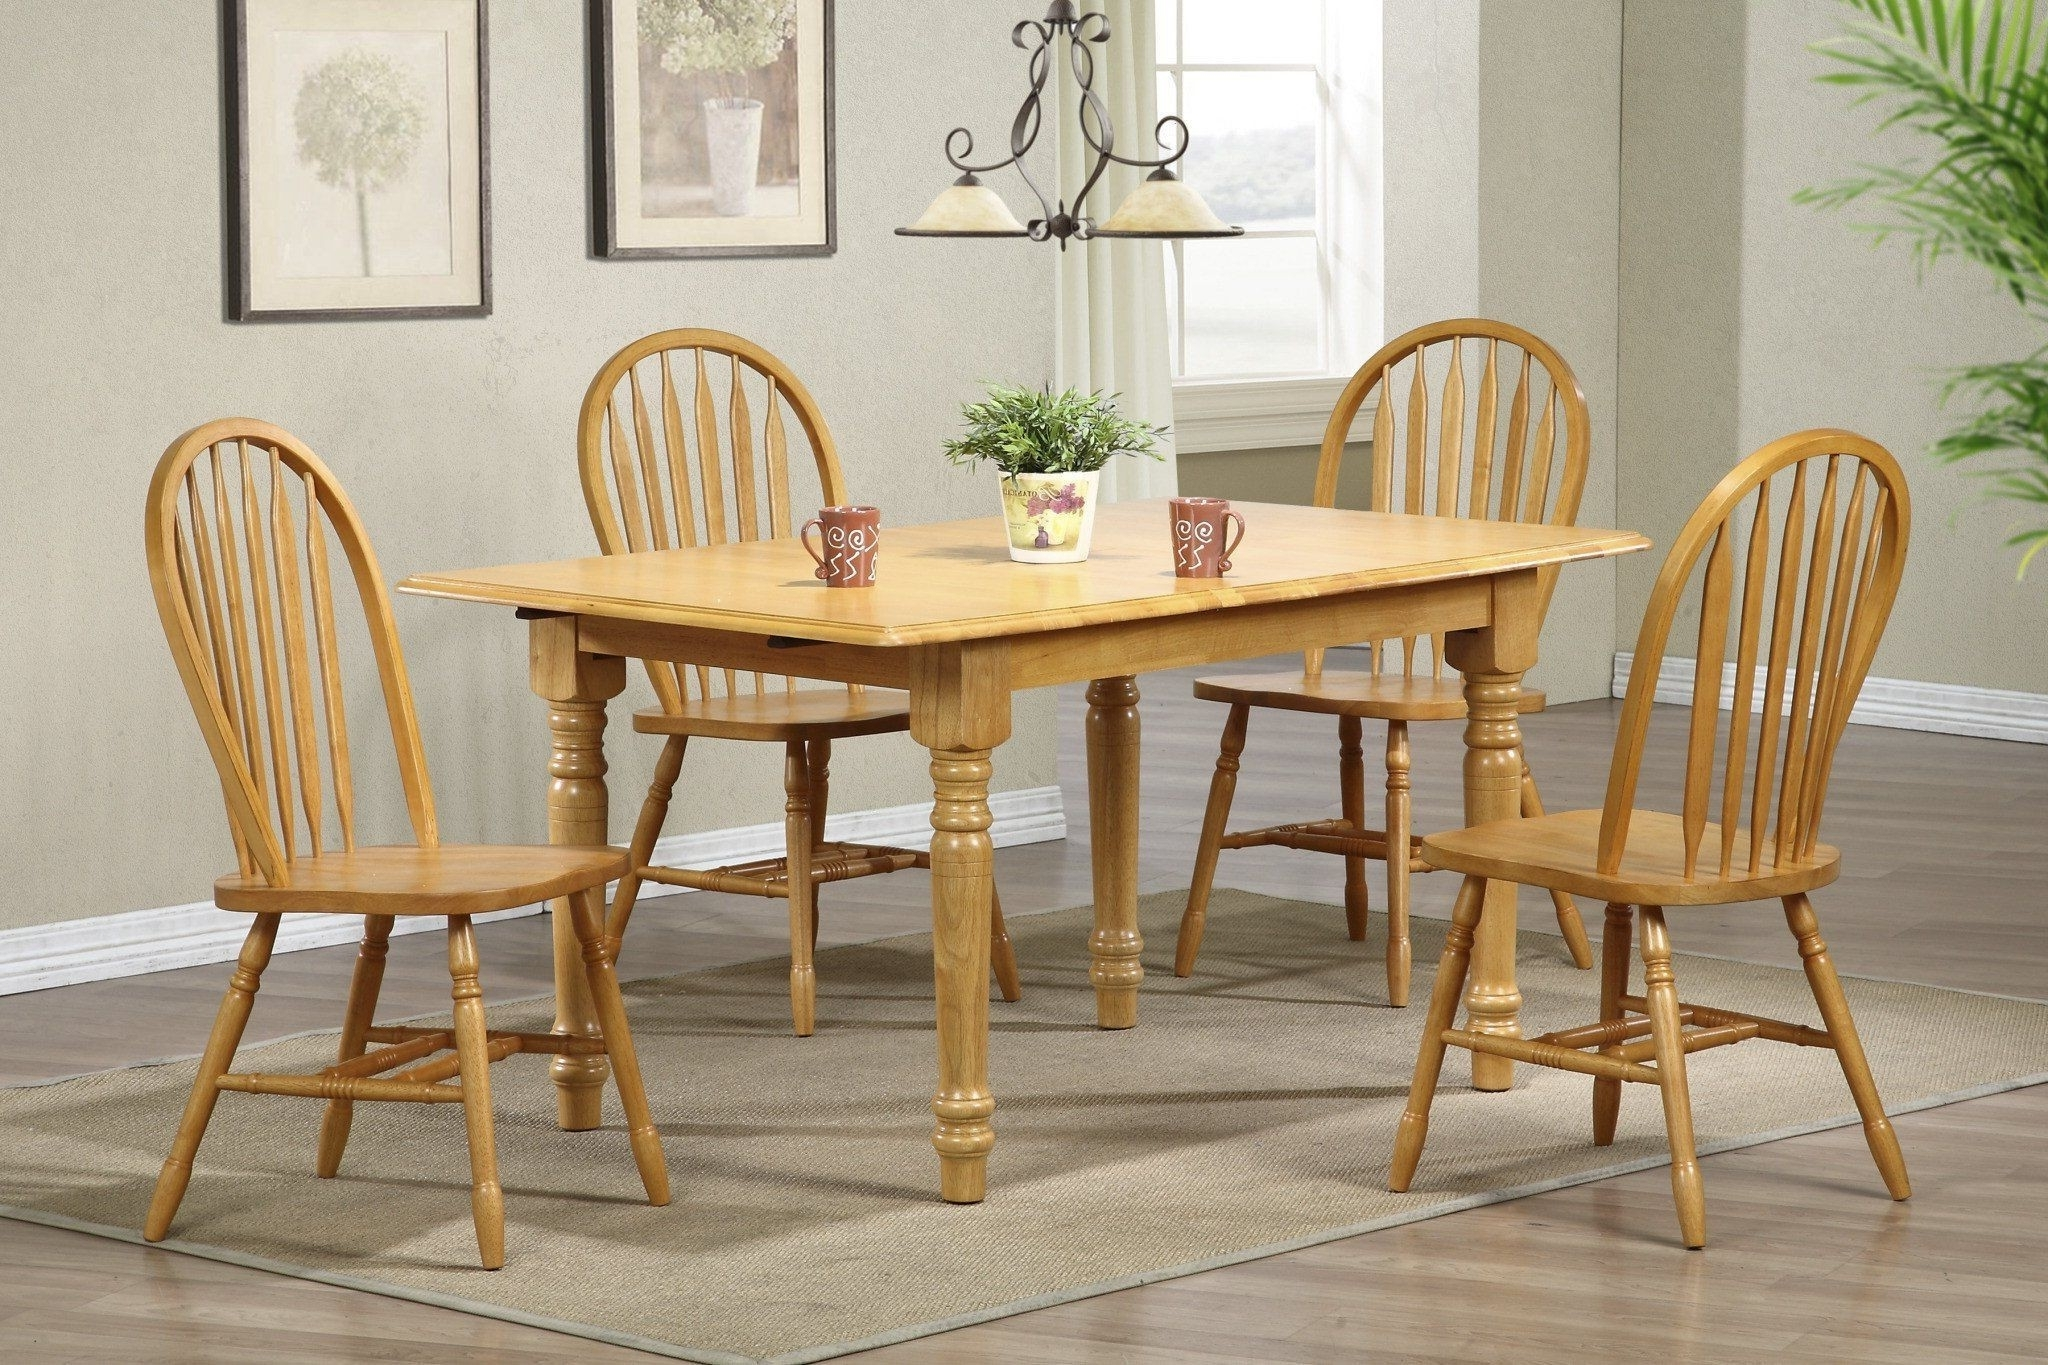 Well Liked The 21 Awesome Large Round Folding Dining Table – Welovedandelion For Large Folding Dining Tables (View 9 of 25)